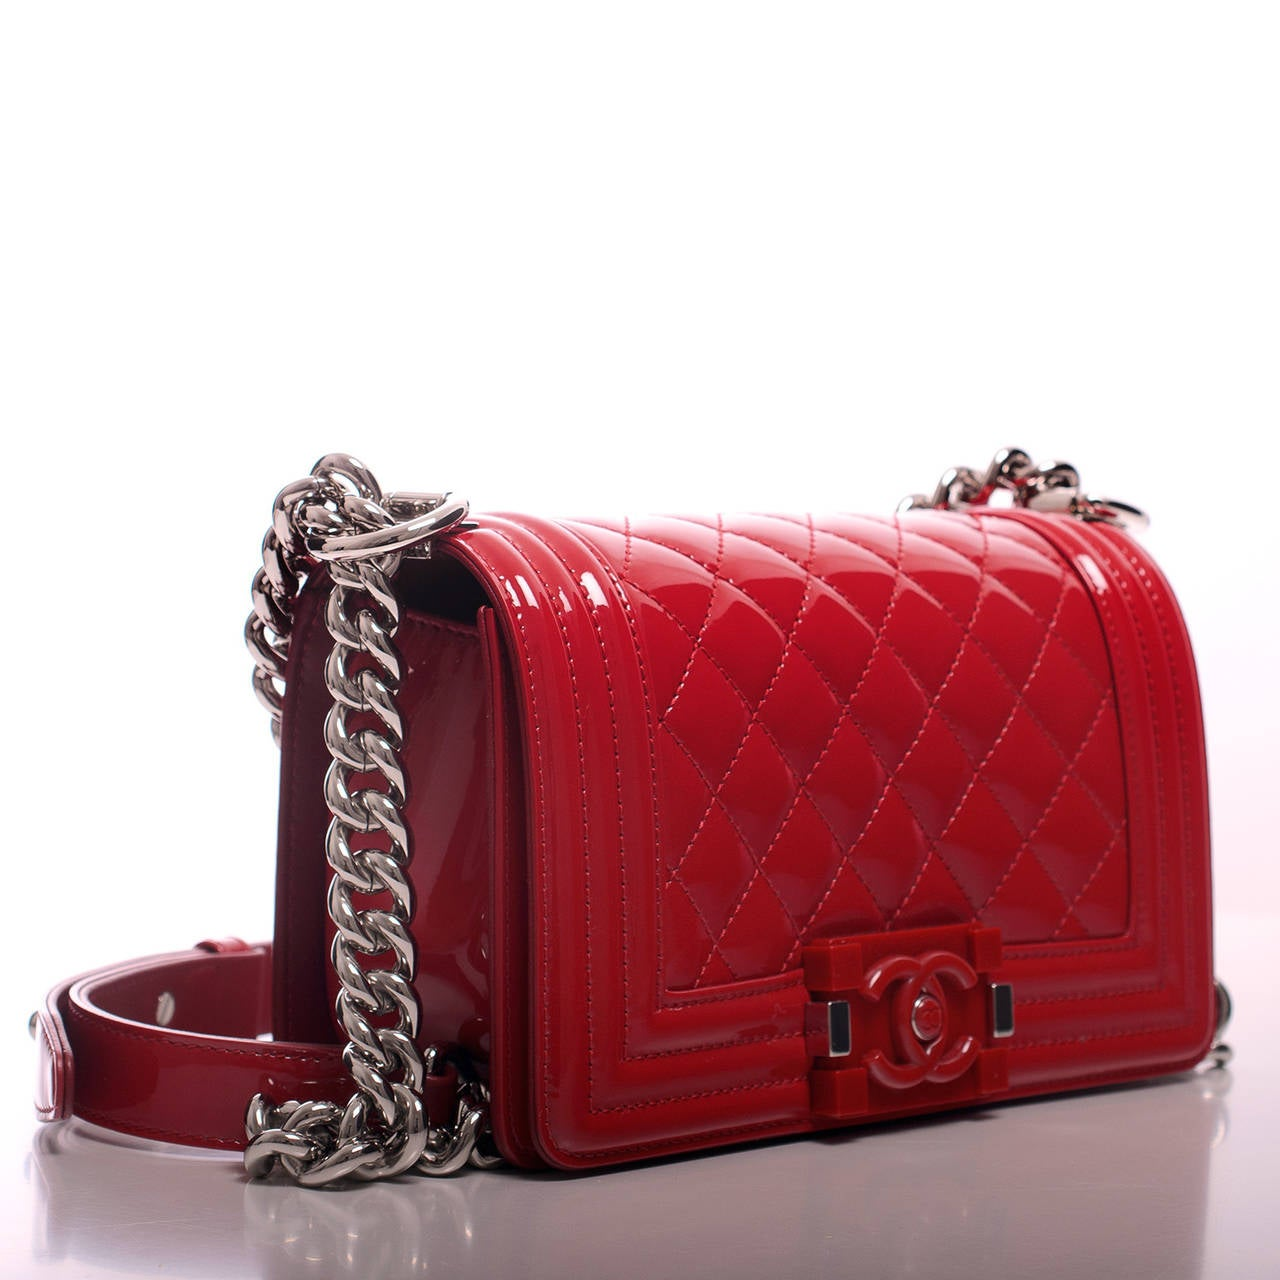 68e53702f552 Chanel Boy Bag Inside Red | Stanford Center for Opportunity Policy ...